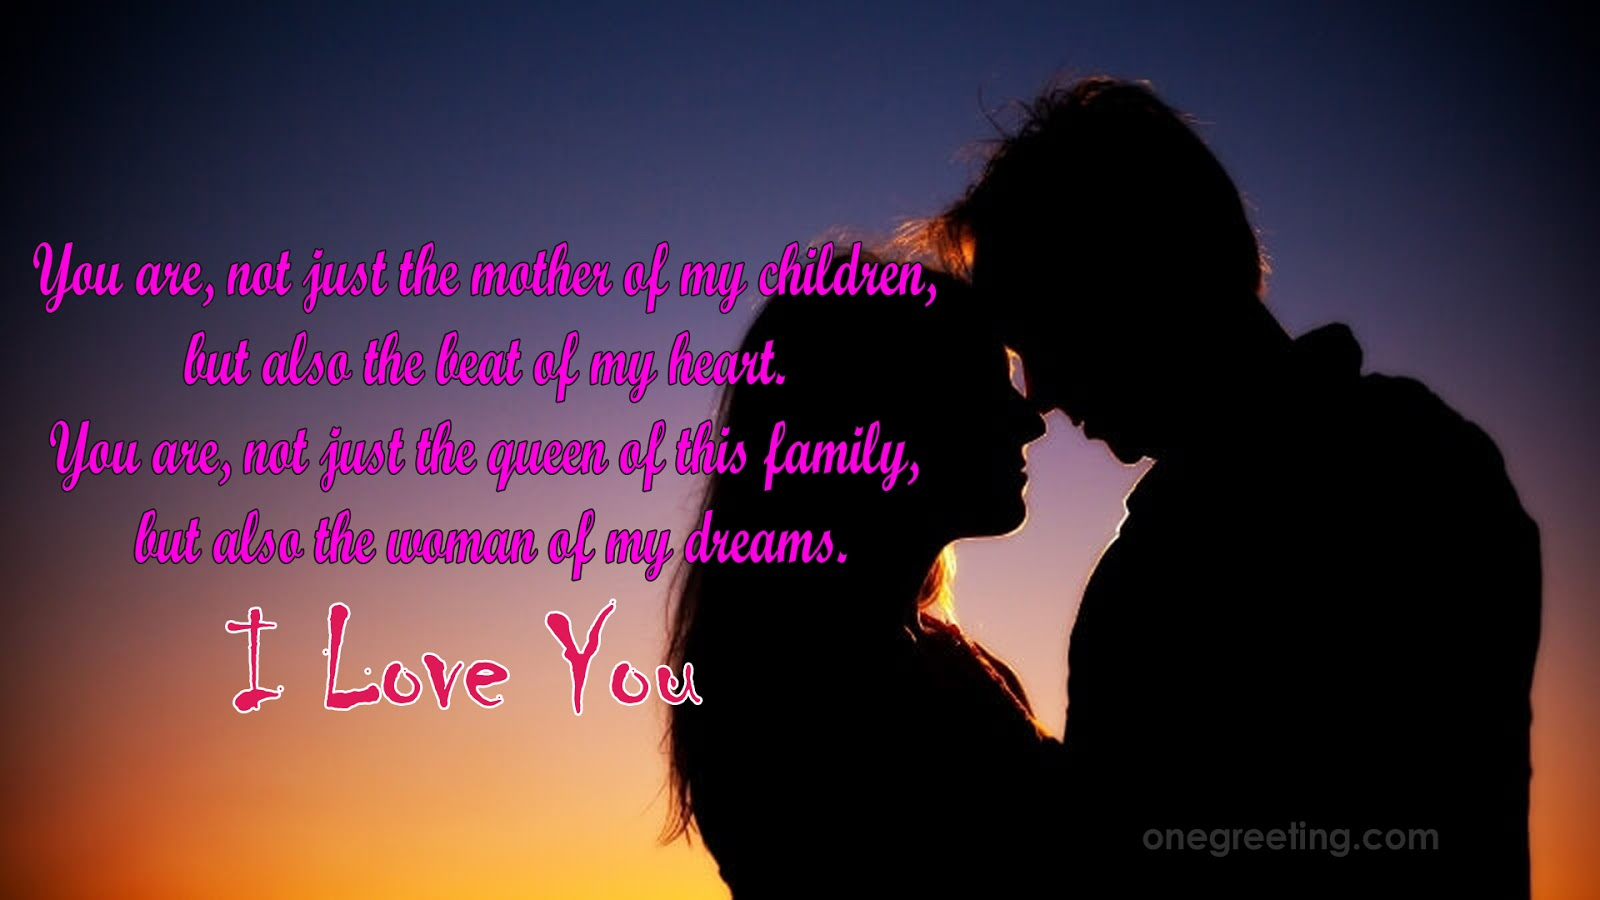 I Love My Children Quotes I Love You Messages For Wife Quotes For Her  One Greeting